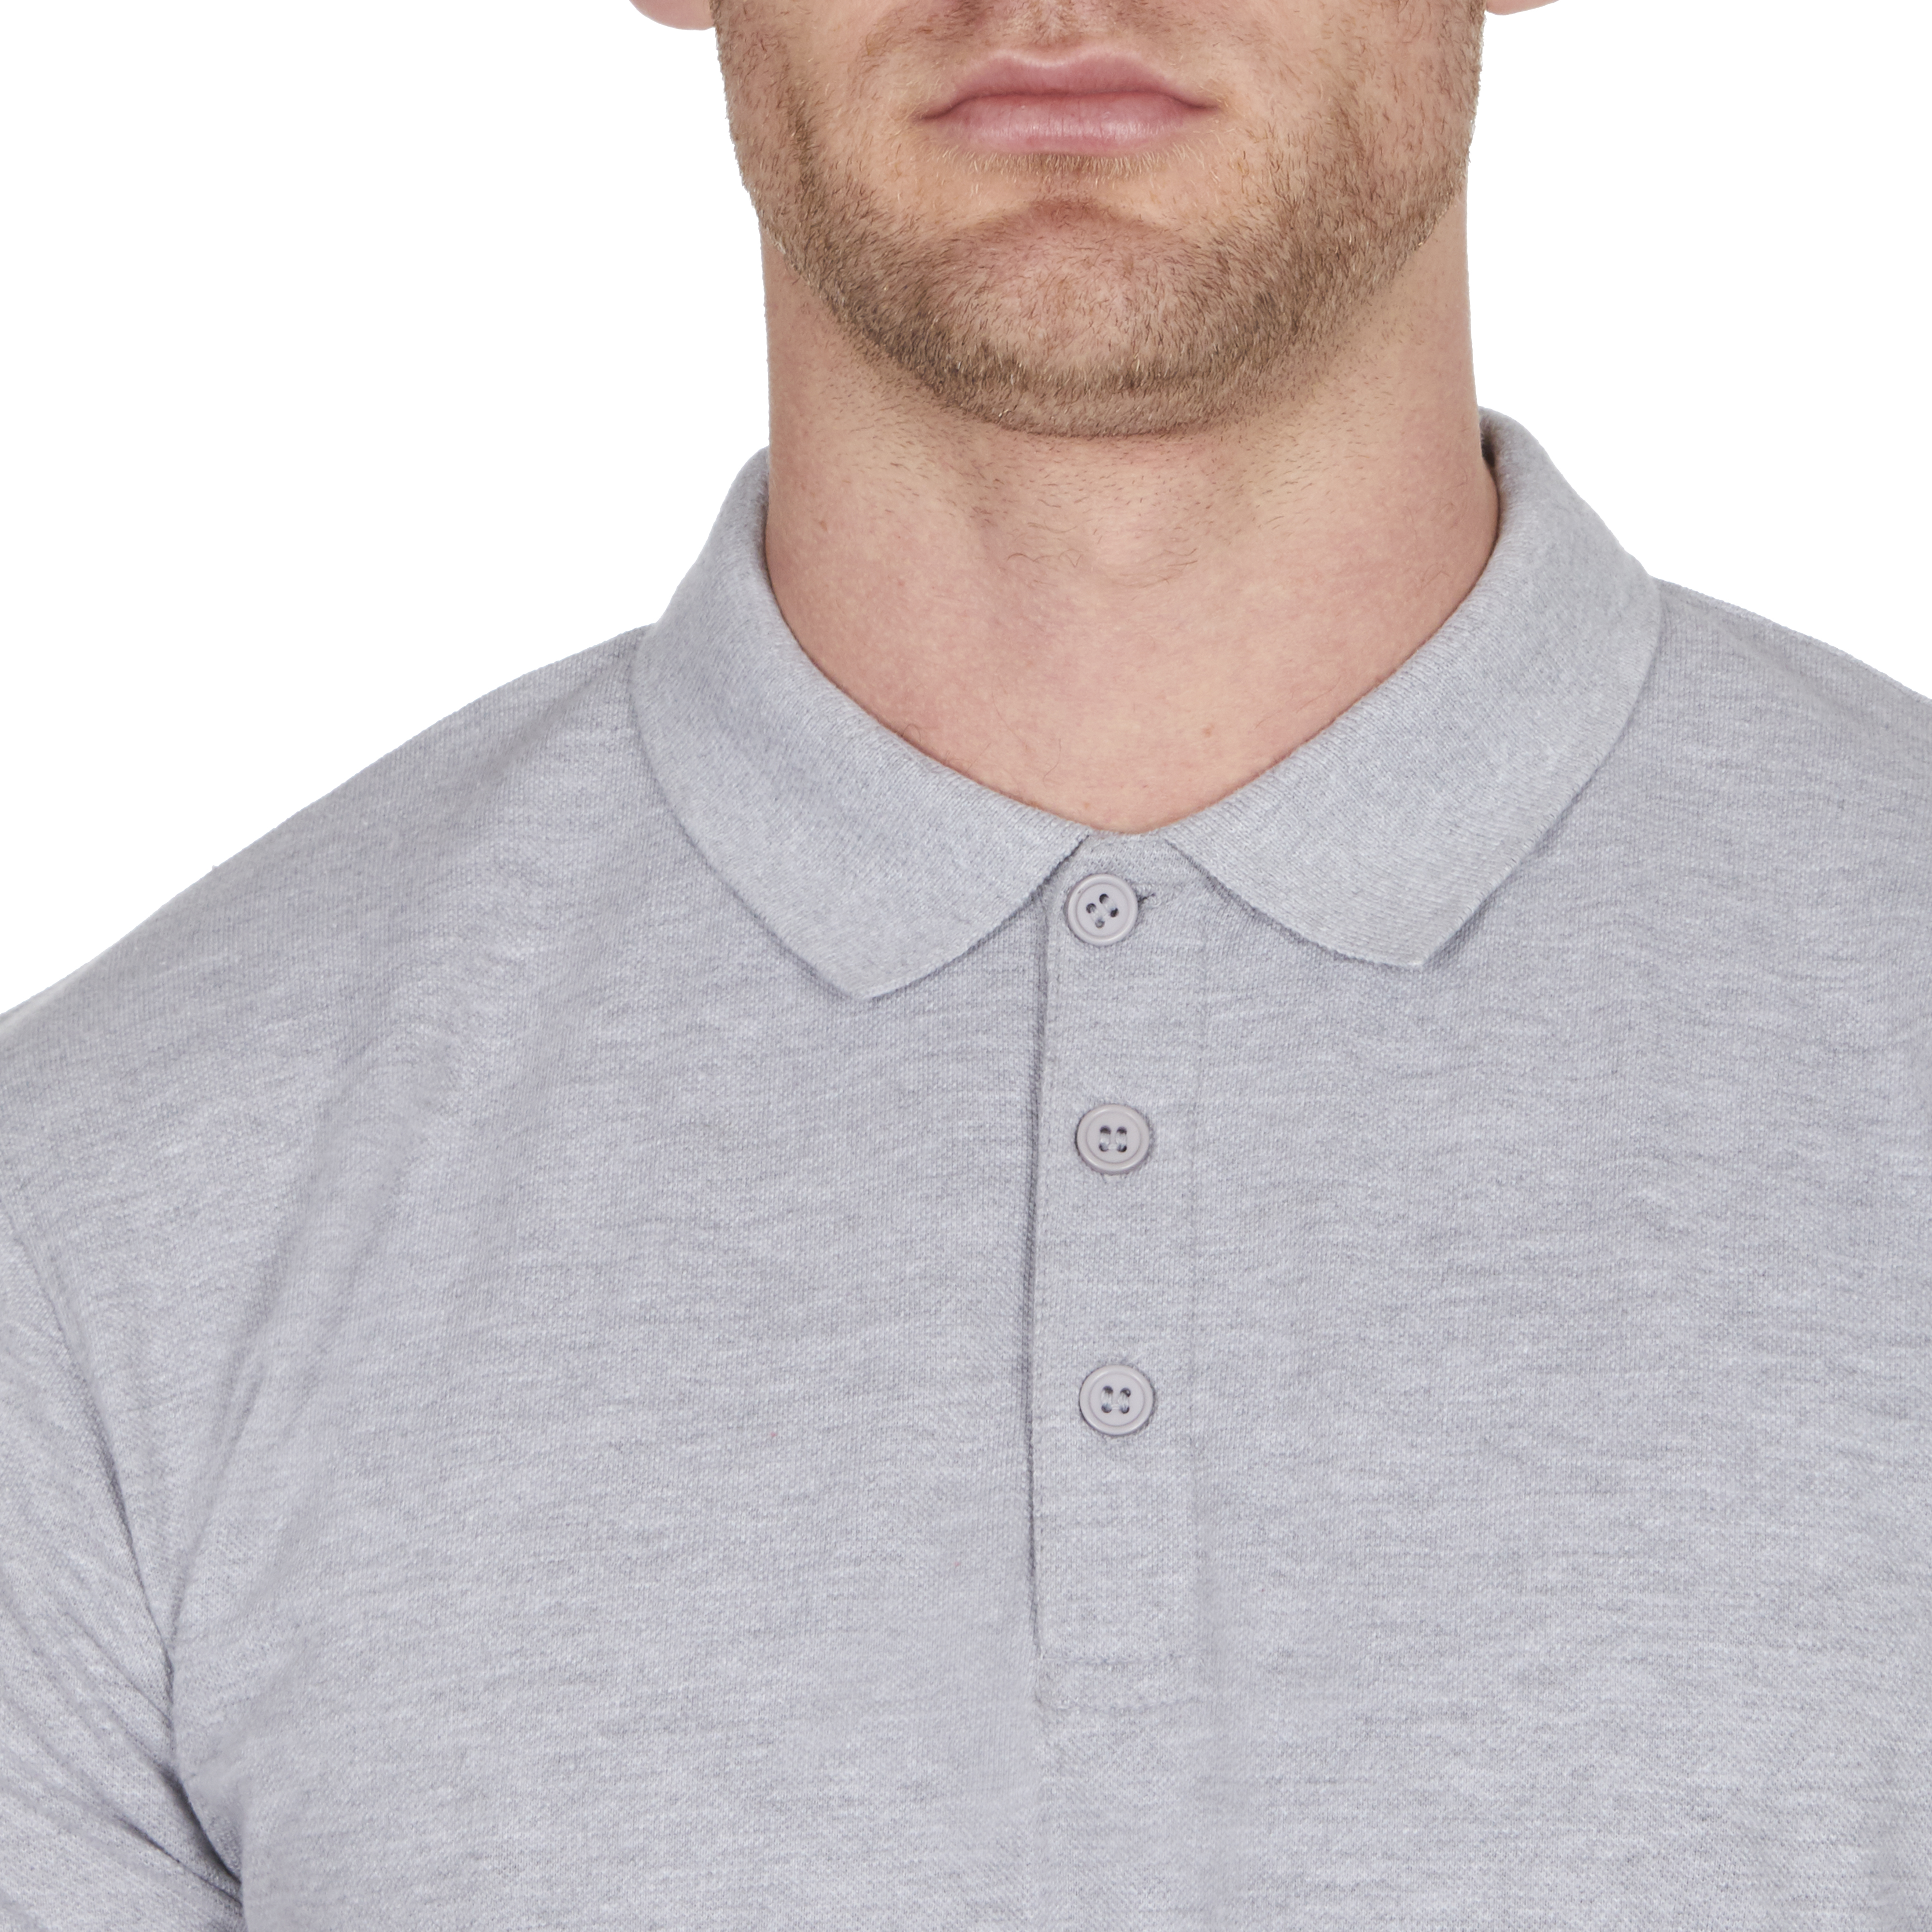 Mens-Classic-Polo-Top-Plus-Size-T-Shirt-Plain-Shirt-Big-And-Tall-Short-Sleeve thumbnail 10